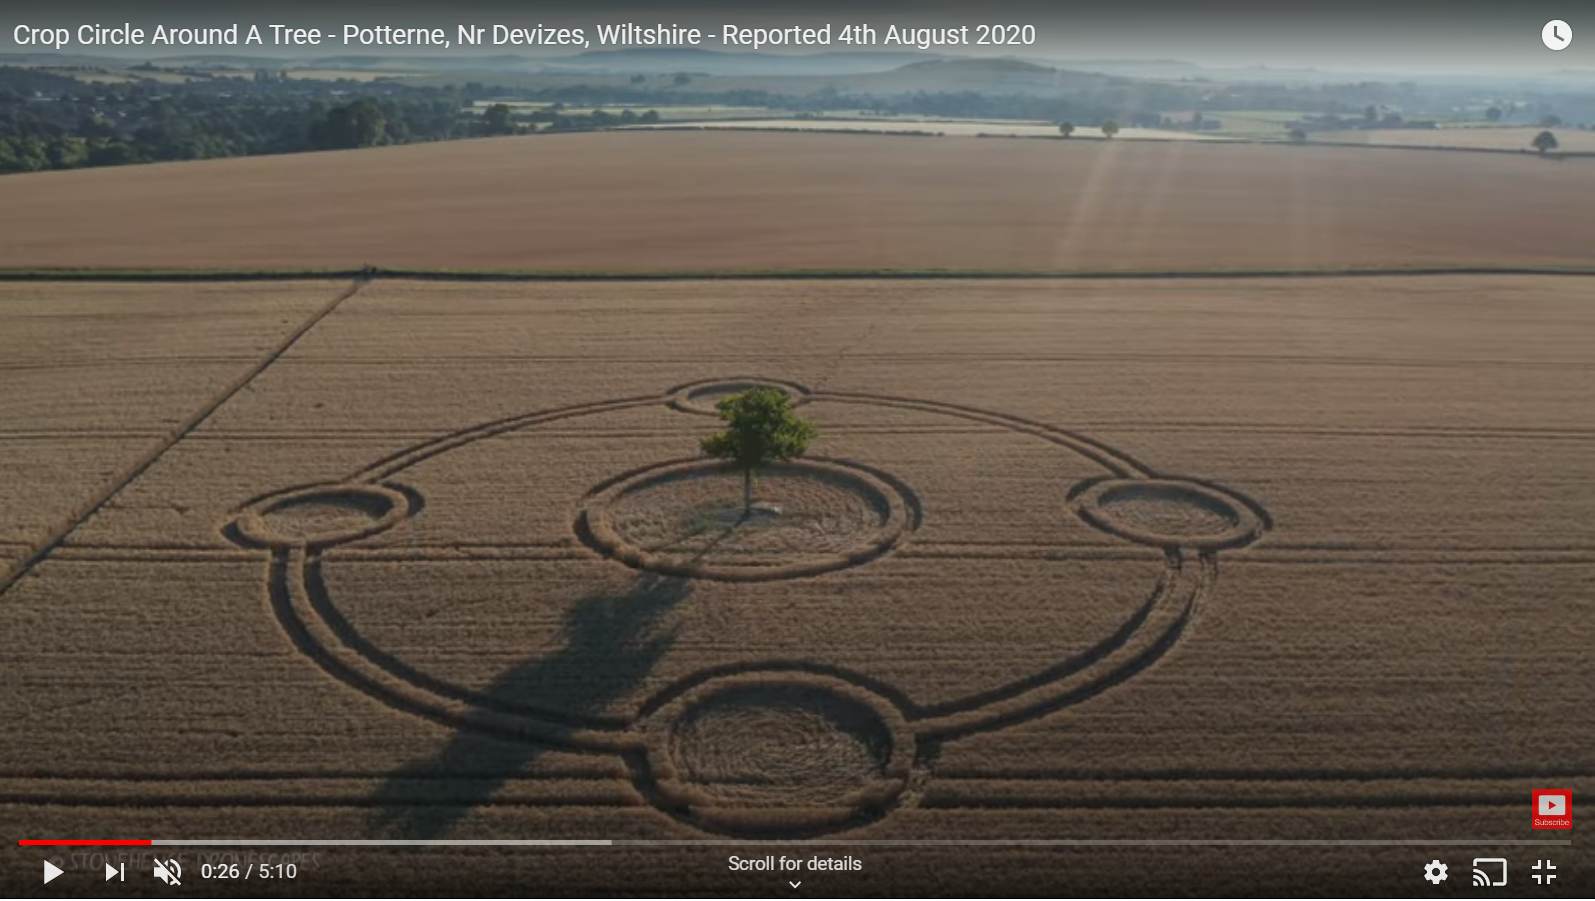 Potterne crop circle around tree